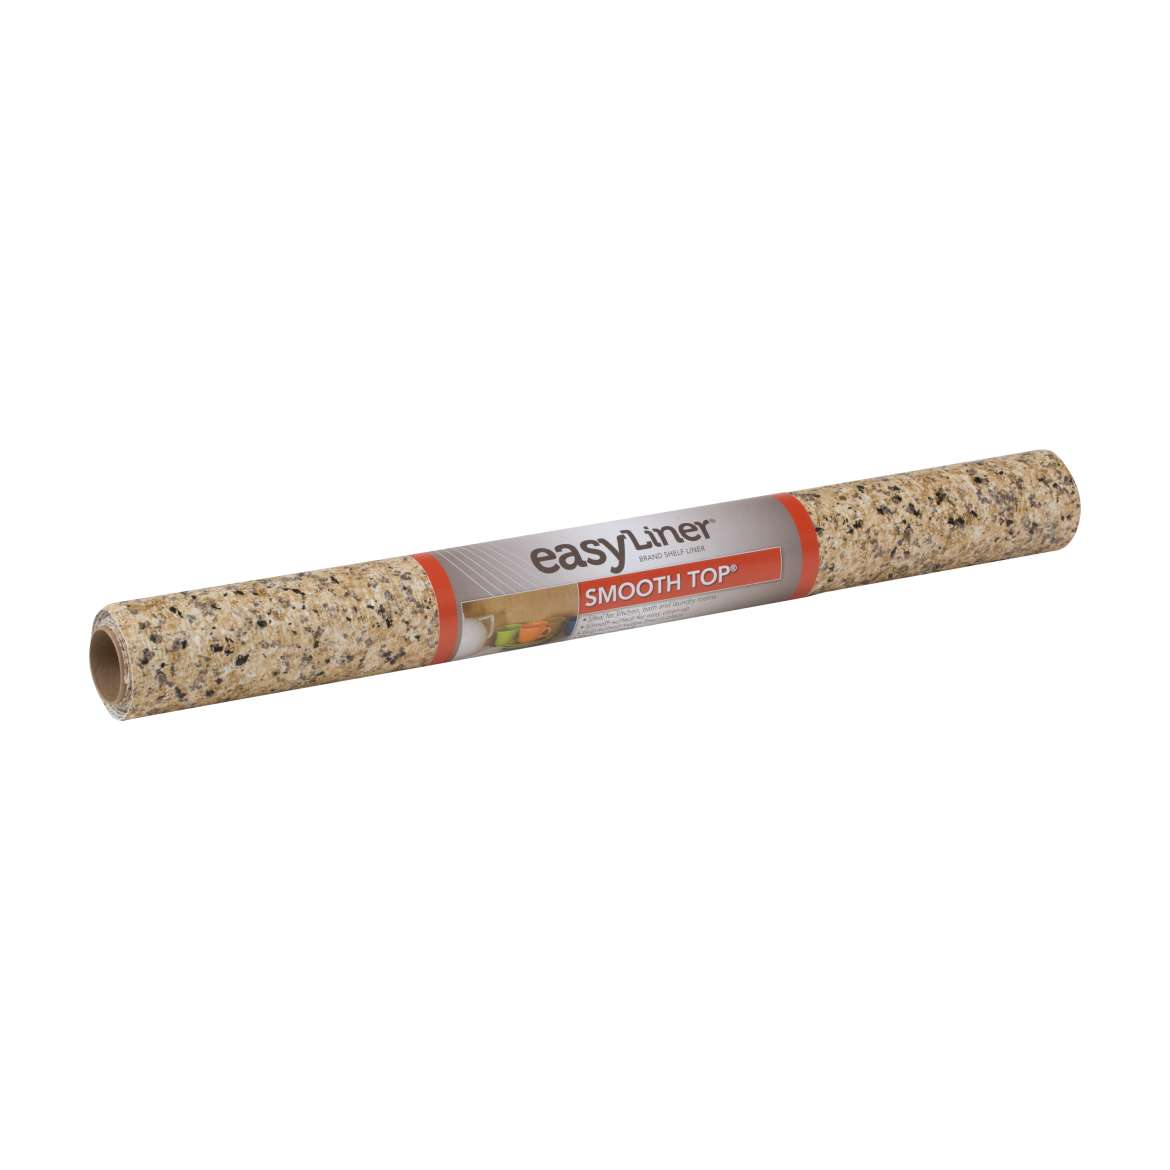 Smooth Top® Easy Liner® Brand Shelf Liner - Beige Granite, 20 in. x 6 ft. Image